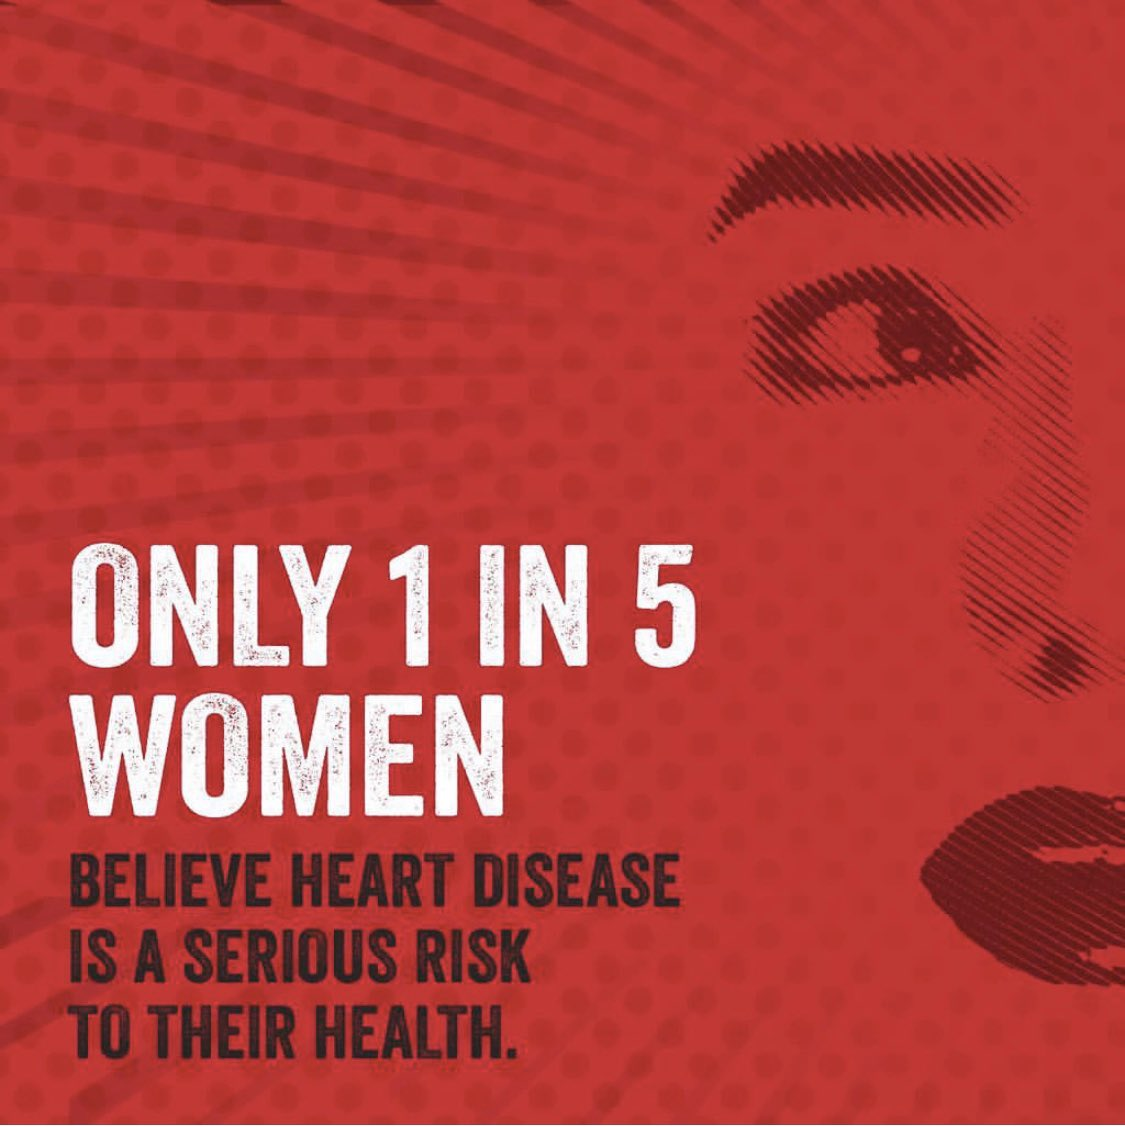 Please @RepMaloney support this H. Res 643 for #heartequity for #Women @WHA twitter.com/MDoftheheart/s…